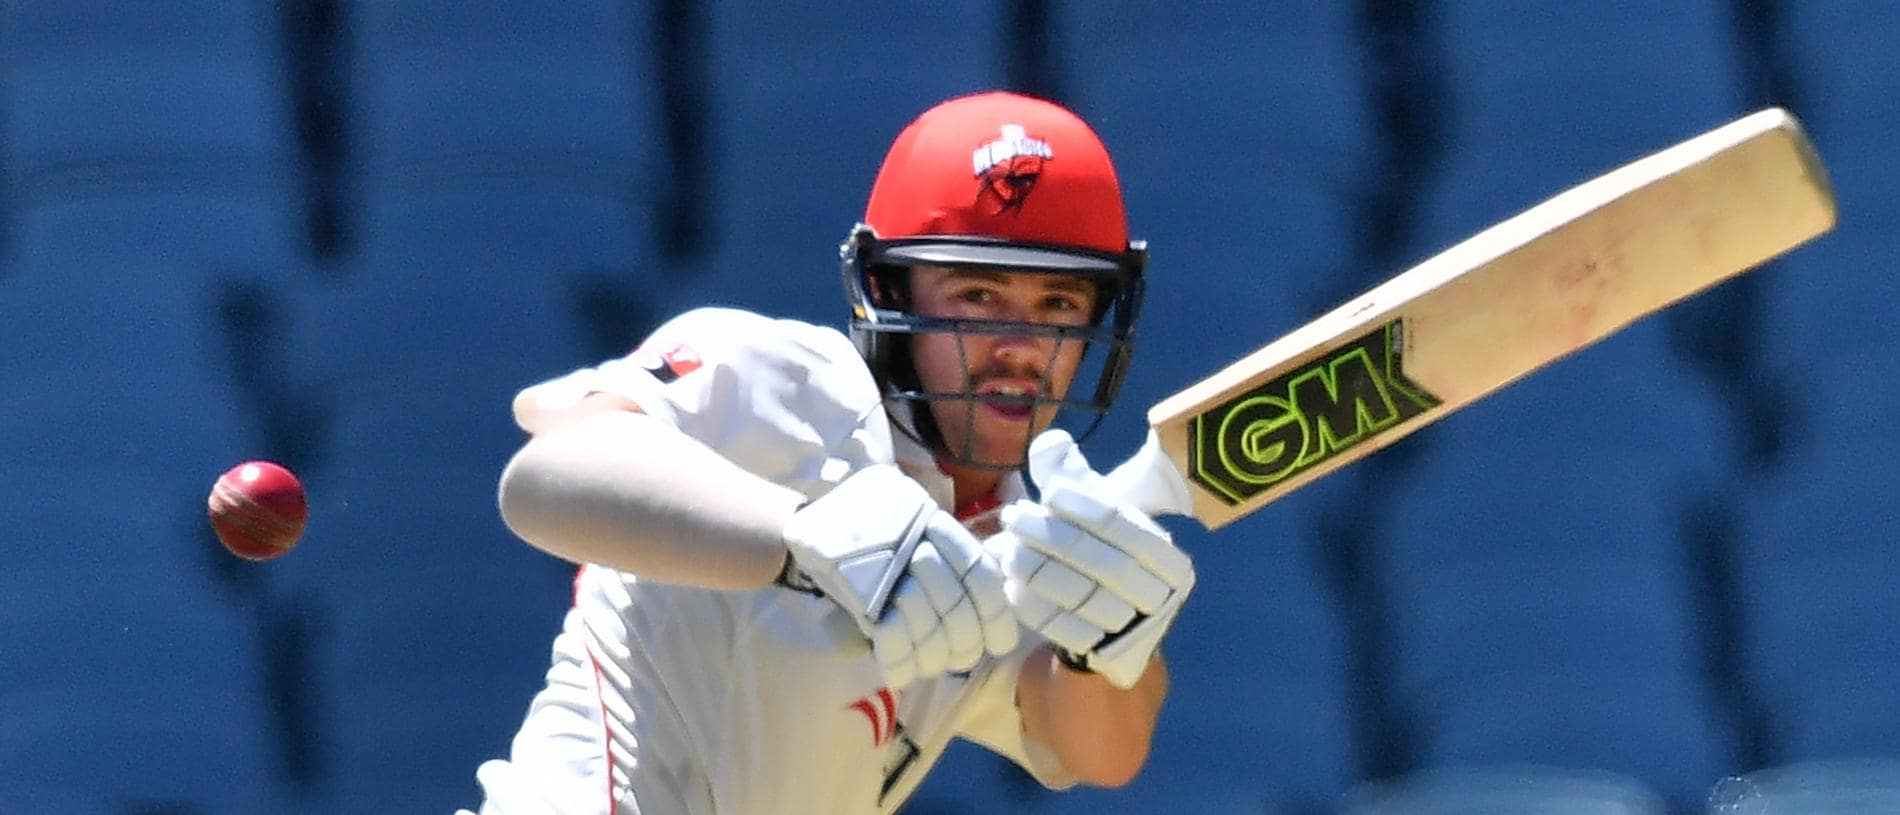 Travis Head of the Redbacks bats during day 1 of the round 4 JLT cricket match between South Australia and Western Australia at the Adelaide Oval in Adelaide, Friday, November 16, 2018. (AAP Image/David Mariuz) NO ARCHIVING, EDITORIAL USE ONLY, IMAGES TO BE USED FOR NEWS REPORTING PURPOSES ONLY, NO COMMERCIAL USE WHATSOEVER, NO USE IN BOOKS WITHOUT PRIOR WRITTEN CONSENT FROM AAP